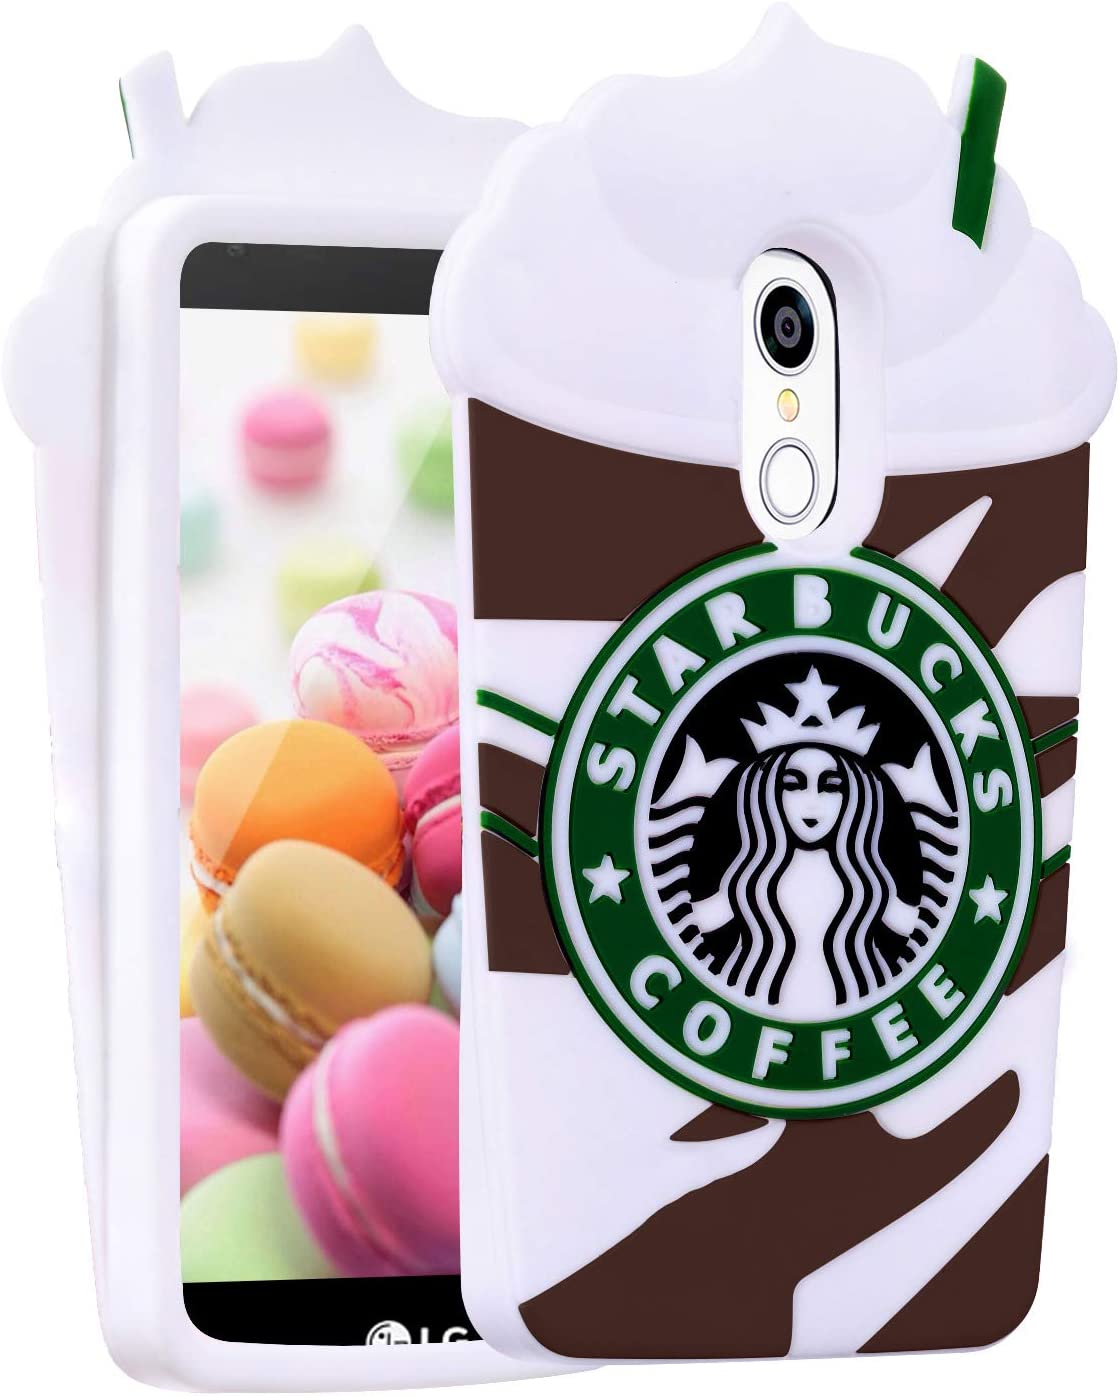 Artbling Case for LG Stylo 4/LG Q Stylus/LG Stylo 4 Plus/Stylus 4, 3D Cartoon Food Cover,Kids Girls Teens,Cute Kawaii Soft Silicone Character Funny Skin for LG Stylo4 Grey Coffee